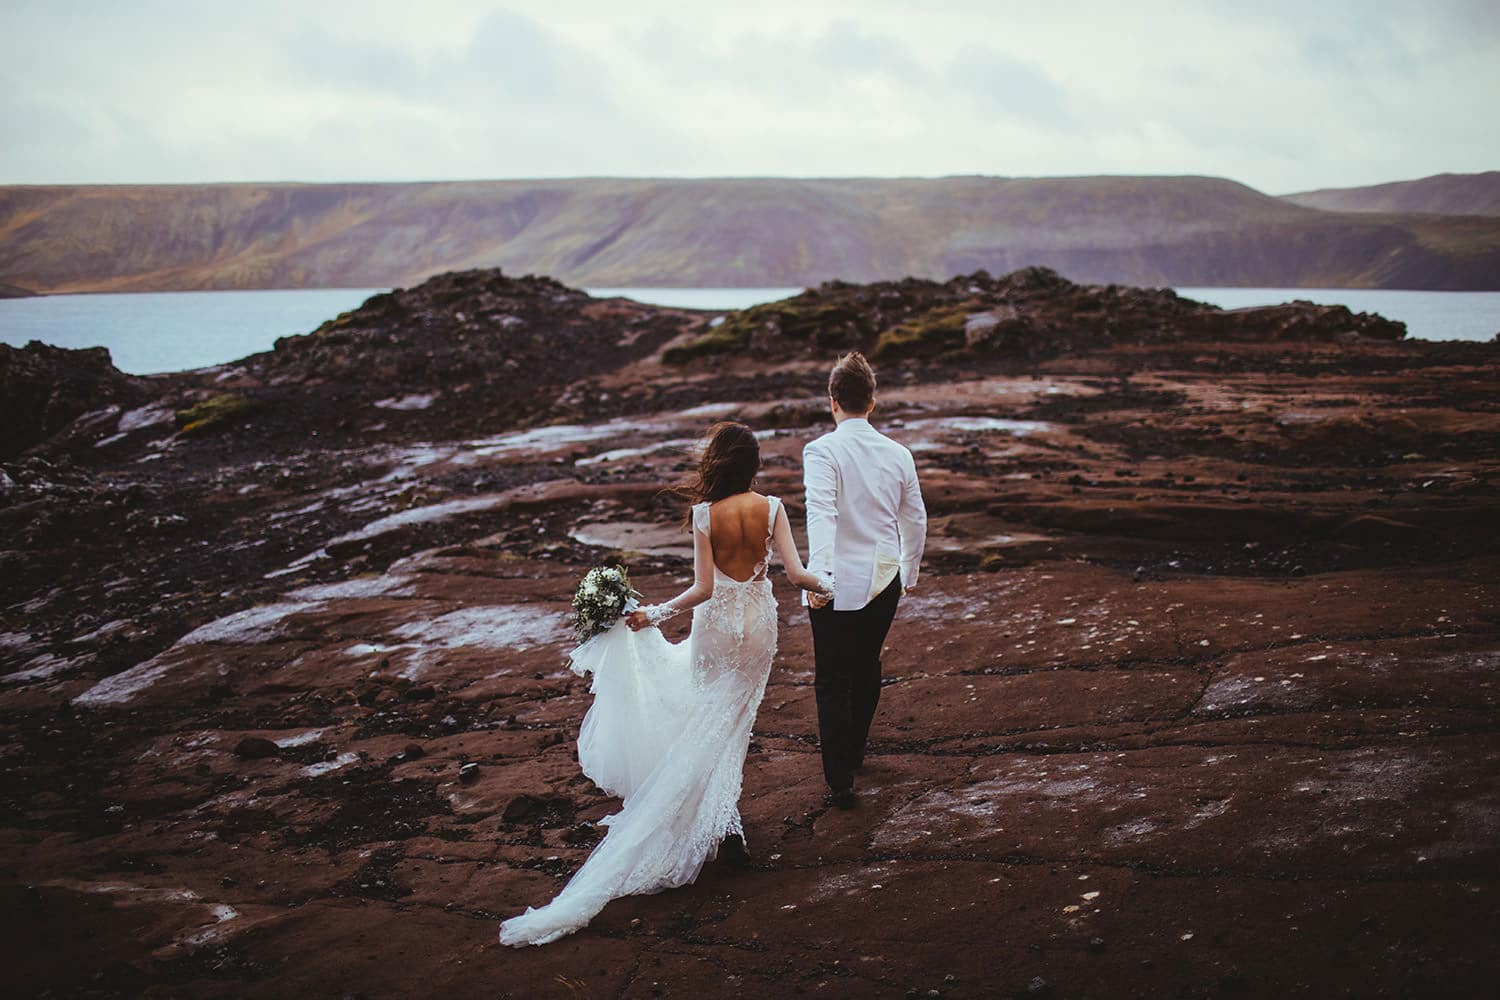 Iceland is a fantastic place to Elope in Europe as this pic of a bride and groom strolling over a lava field shows.